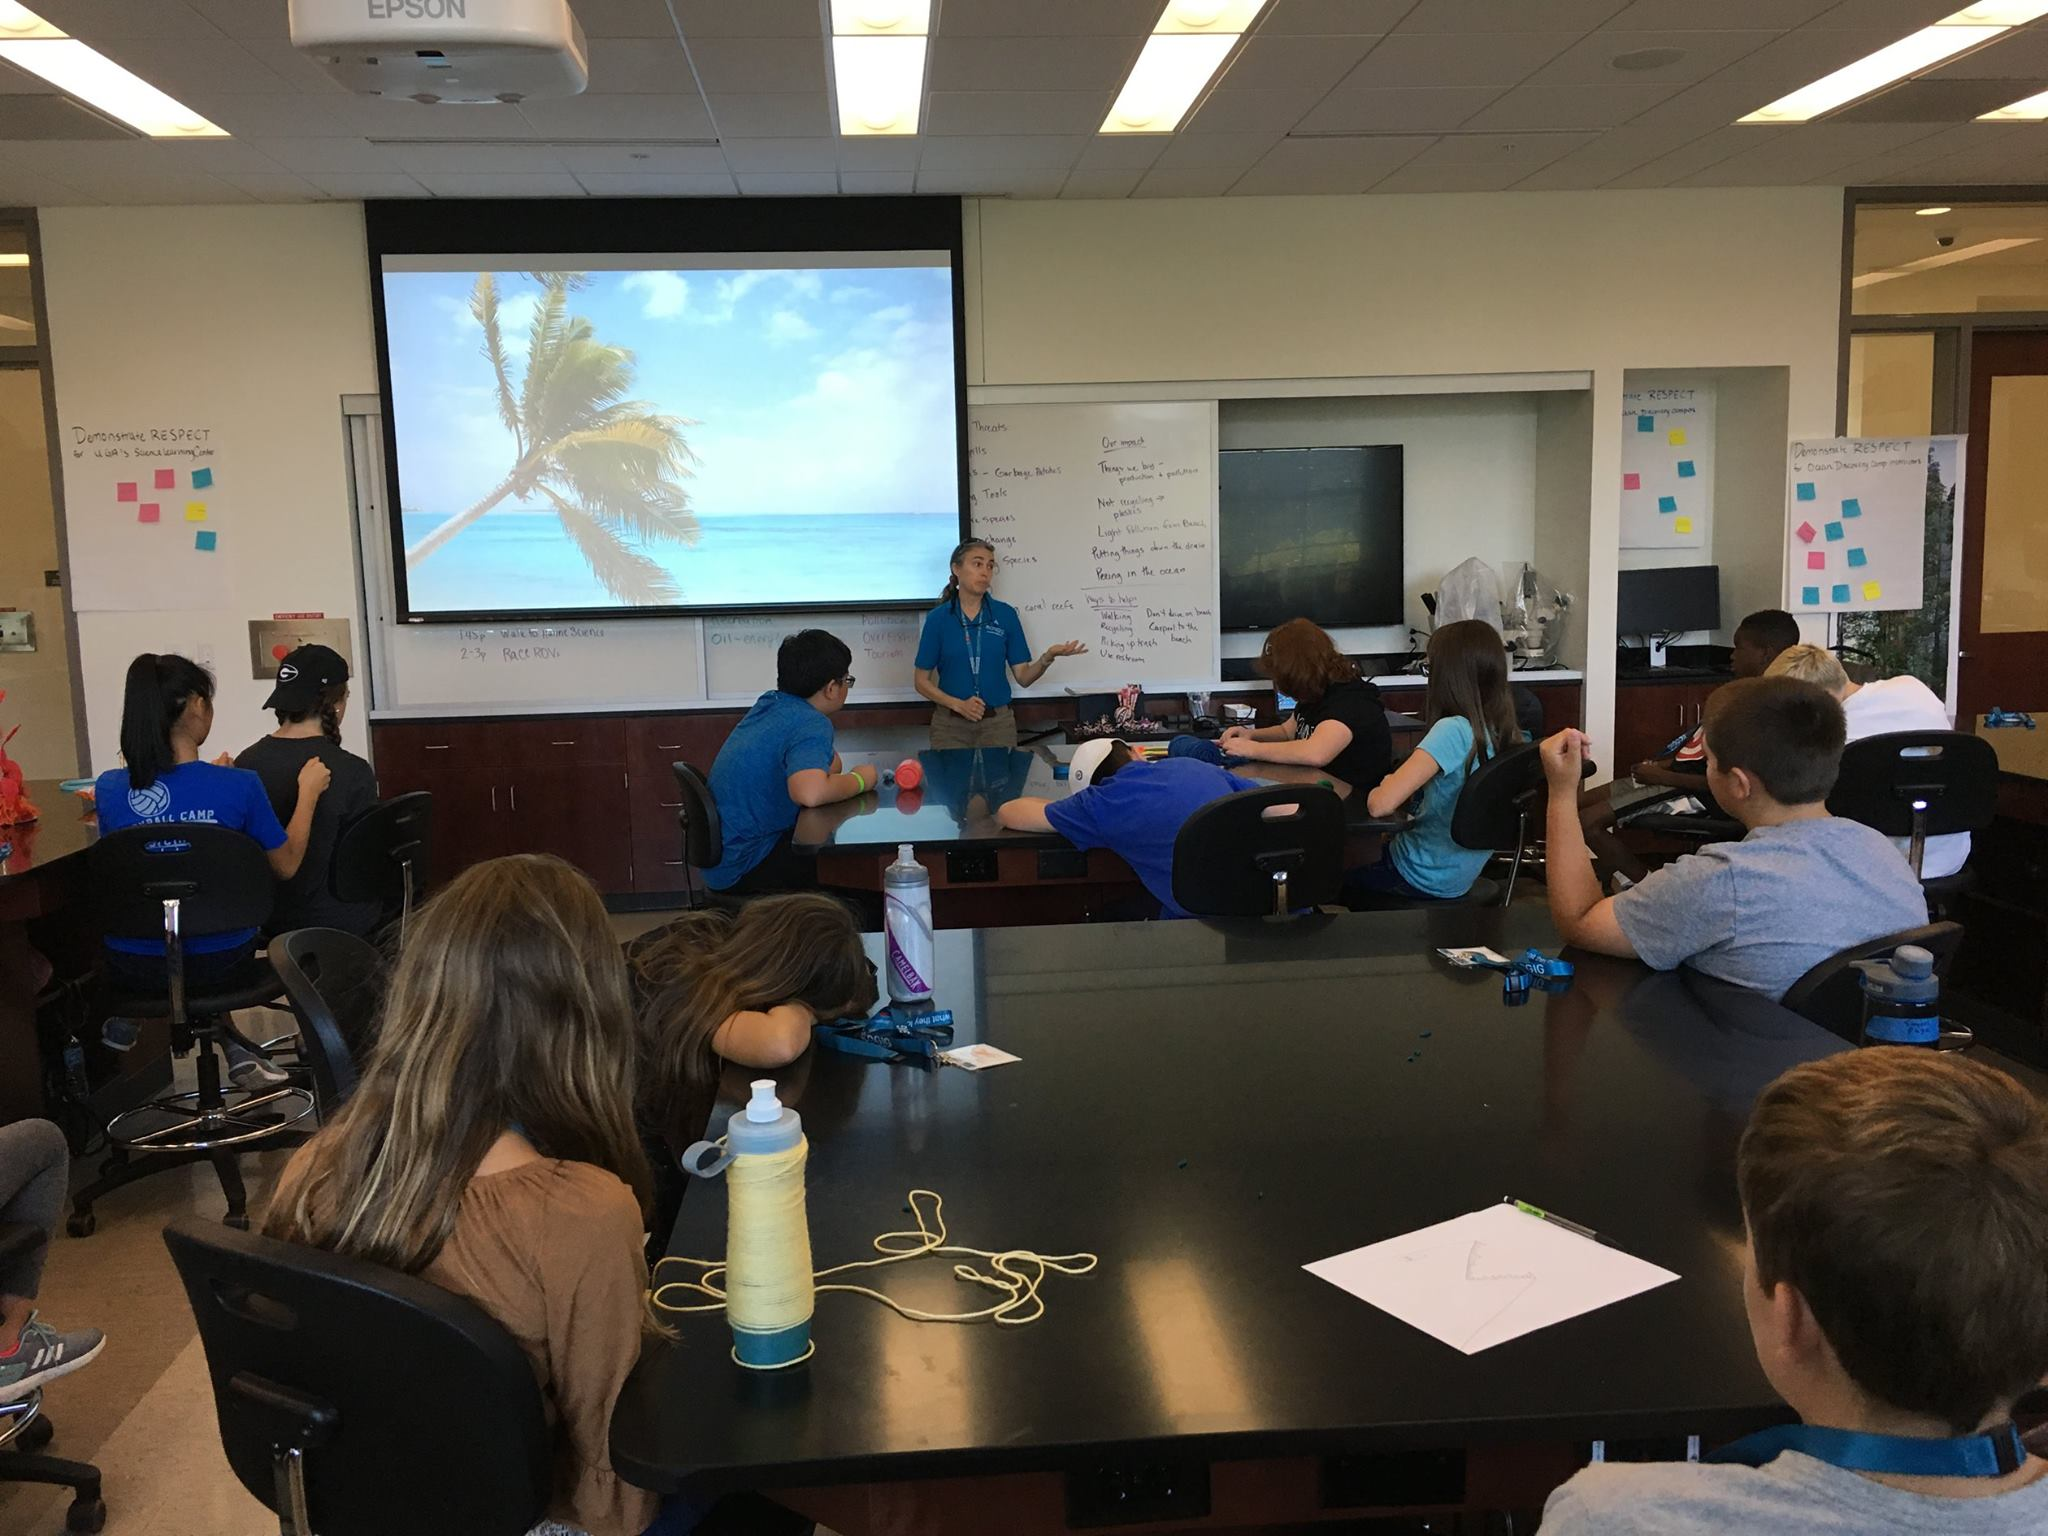 <div style='color:#000000;'><br /><br /><h2>2017 Ocean Discovery Camp. ECOGIG Project Director Dr. Mandy Joye talking about ocean exploration with campers. </h2>(c) ECOGIG</div>